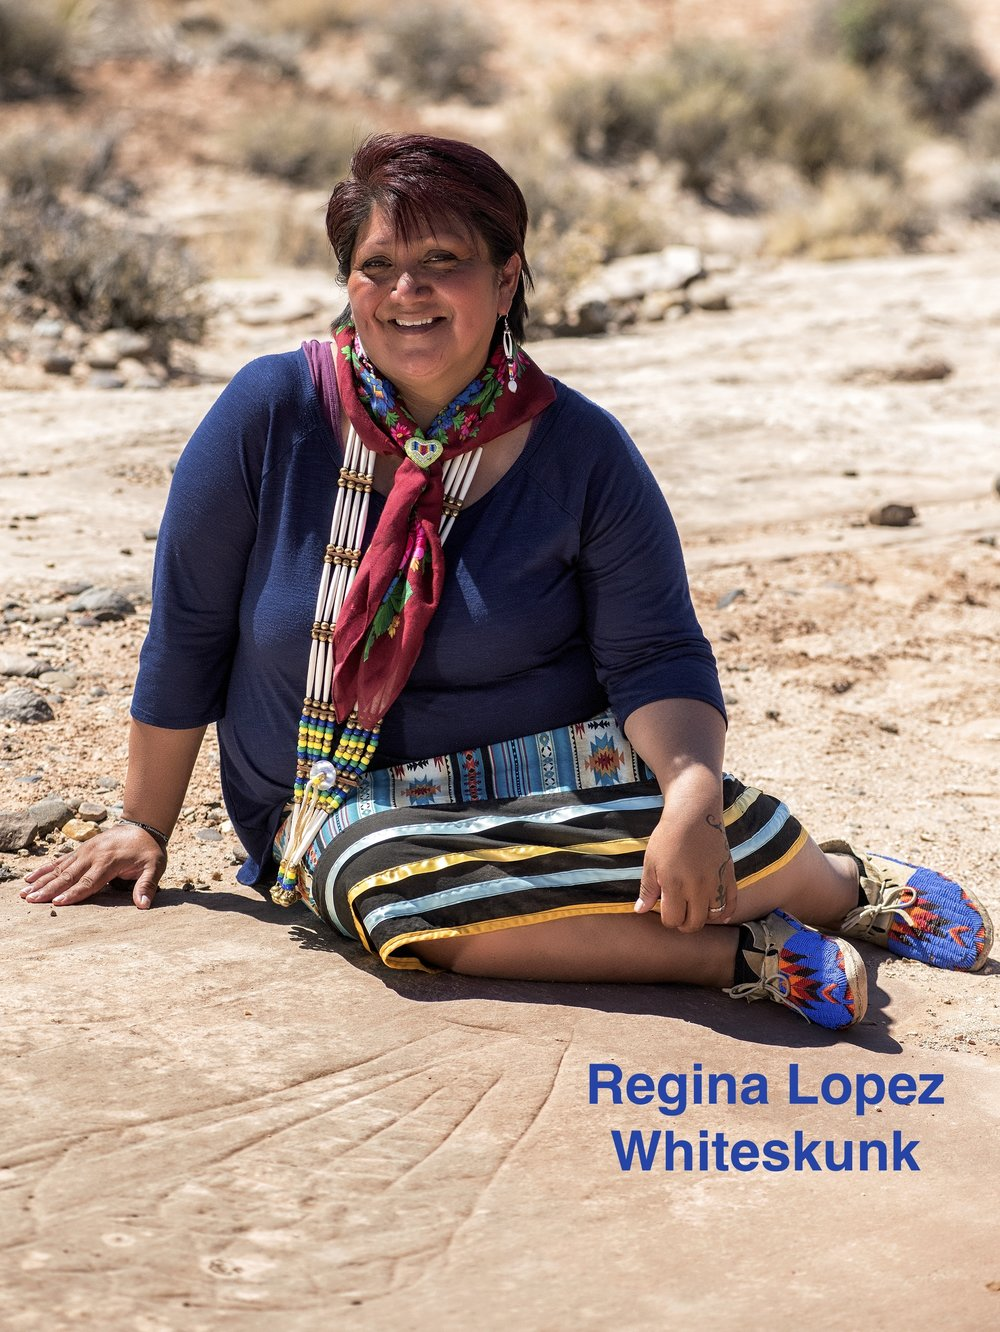 Regina Lopez-Whiteskunk was born and raised in southwestern Colorado. A member of the Ute Mountain Ute Tribe of Towaoc, Colorado. At an early age has advocated for land, air, water and animals. She has spent ten years in the Information Technology field working for Chief Dull Knife College, the Southern Ute Indian and Ute Mountain Ute Indian Tribes of Colorado. Lopez-Whiteskunk has traveled extensively throughout the the country presenting and sharing the Ute culture through song, dance and presentations. In October of 2013 she was elected to serve as a member of the Ute Mountain Ute Tribal leadership. Lopez-Whiteskunk is a former Co-Chair for the Bears Ears Intertribal Coalition. She strongly believes that the inner core of healing comes from the knowledge of our land and elders. Formerly, the Education Director for the Ute Indian Museum in Montrose, Colorado, she is honored to continue to protect, preserve and serve through education creating a better understanding of our resources and culture.